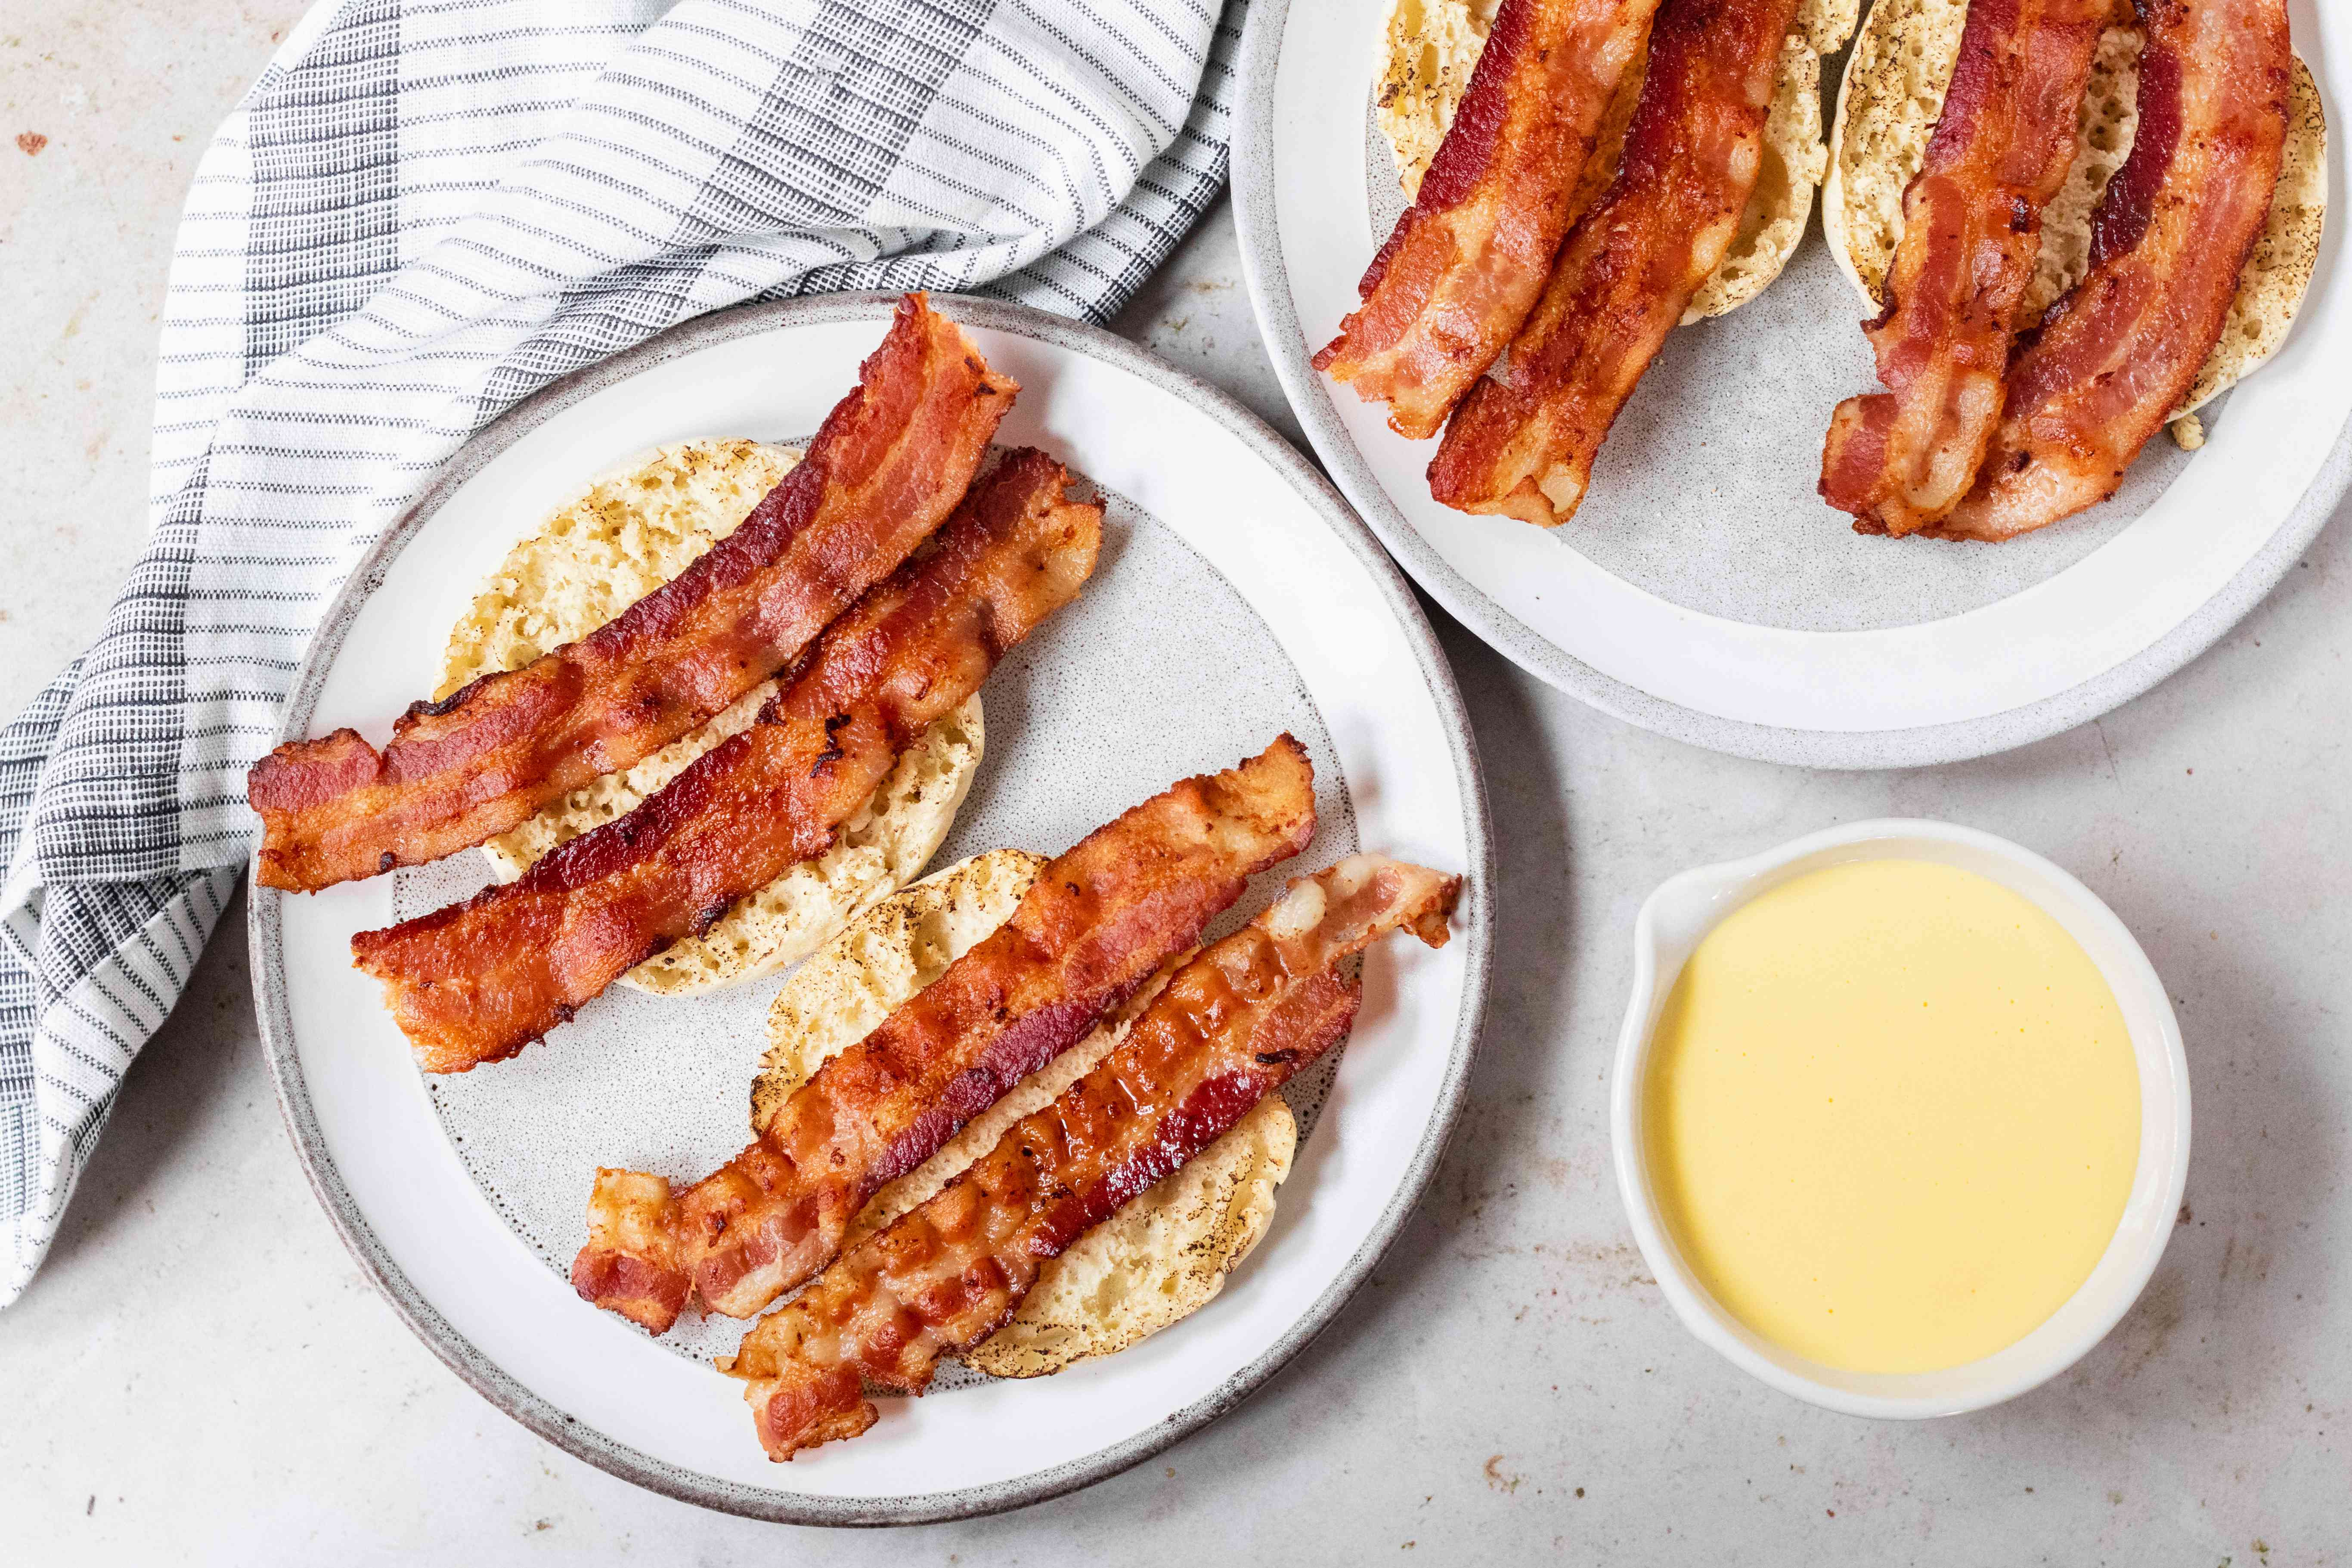 English muffins topped with bacon with hollandaise sauce on the side to show how to make eggs benedict.